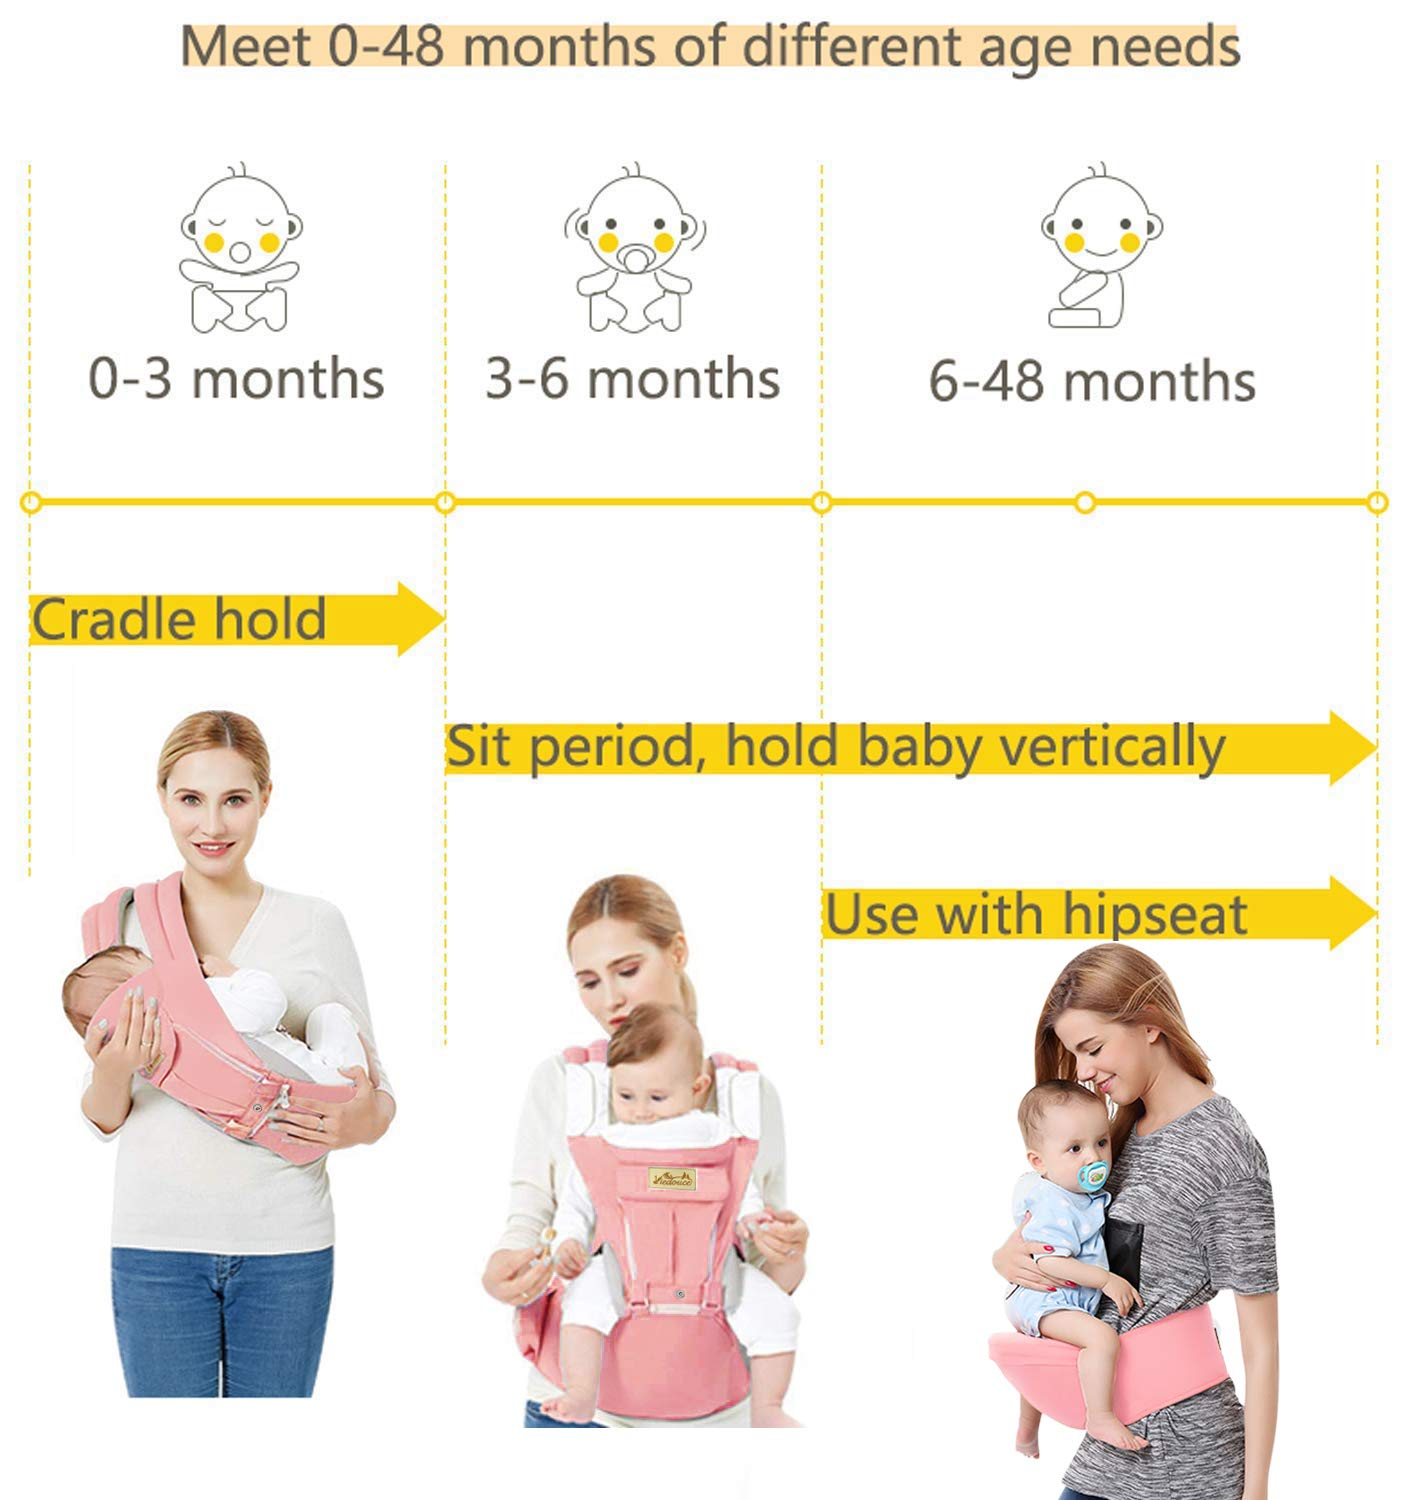 Viedouce Baby Carrier Ergonomic for Newborn,Pure Cotton Front Back Child Carrier with Detachable Hood Multi-Position Soft Backpack Carrier,Complete Safety Protection(0-48 Months) (Pink) Viedouce 【More environmentally friendly】-Baby carrier has high quality pure cotton fabric with 3D breathable mesh take care of your health and the health of your baby; The detachable sun visor and wind cap provide warmth in the winter and freshness in the summer. At the same time, the zipper buckle is designed for easy disassembly and cleaning. 【More ergonomic】 -Baby carrier for newborn has an enlarged arc stool to better support the baby's thighs, the M design that allows the knees to be higher than the buttocks when your baby sits, is more ergonomic. 【Comfort and safety】 - The area near the abdomen is filled with a soft and thick sponge, reduces the pressure on the abdomen and gives more comfort to you and your baby. High quality professional safety buckles and attach, shock absorbing pads, are equipped to protect your baby. 5